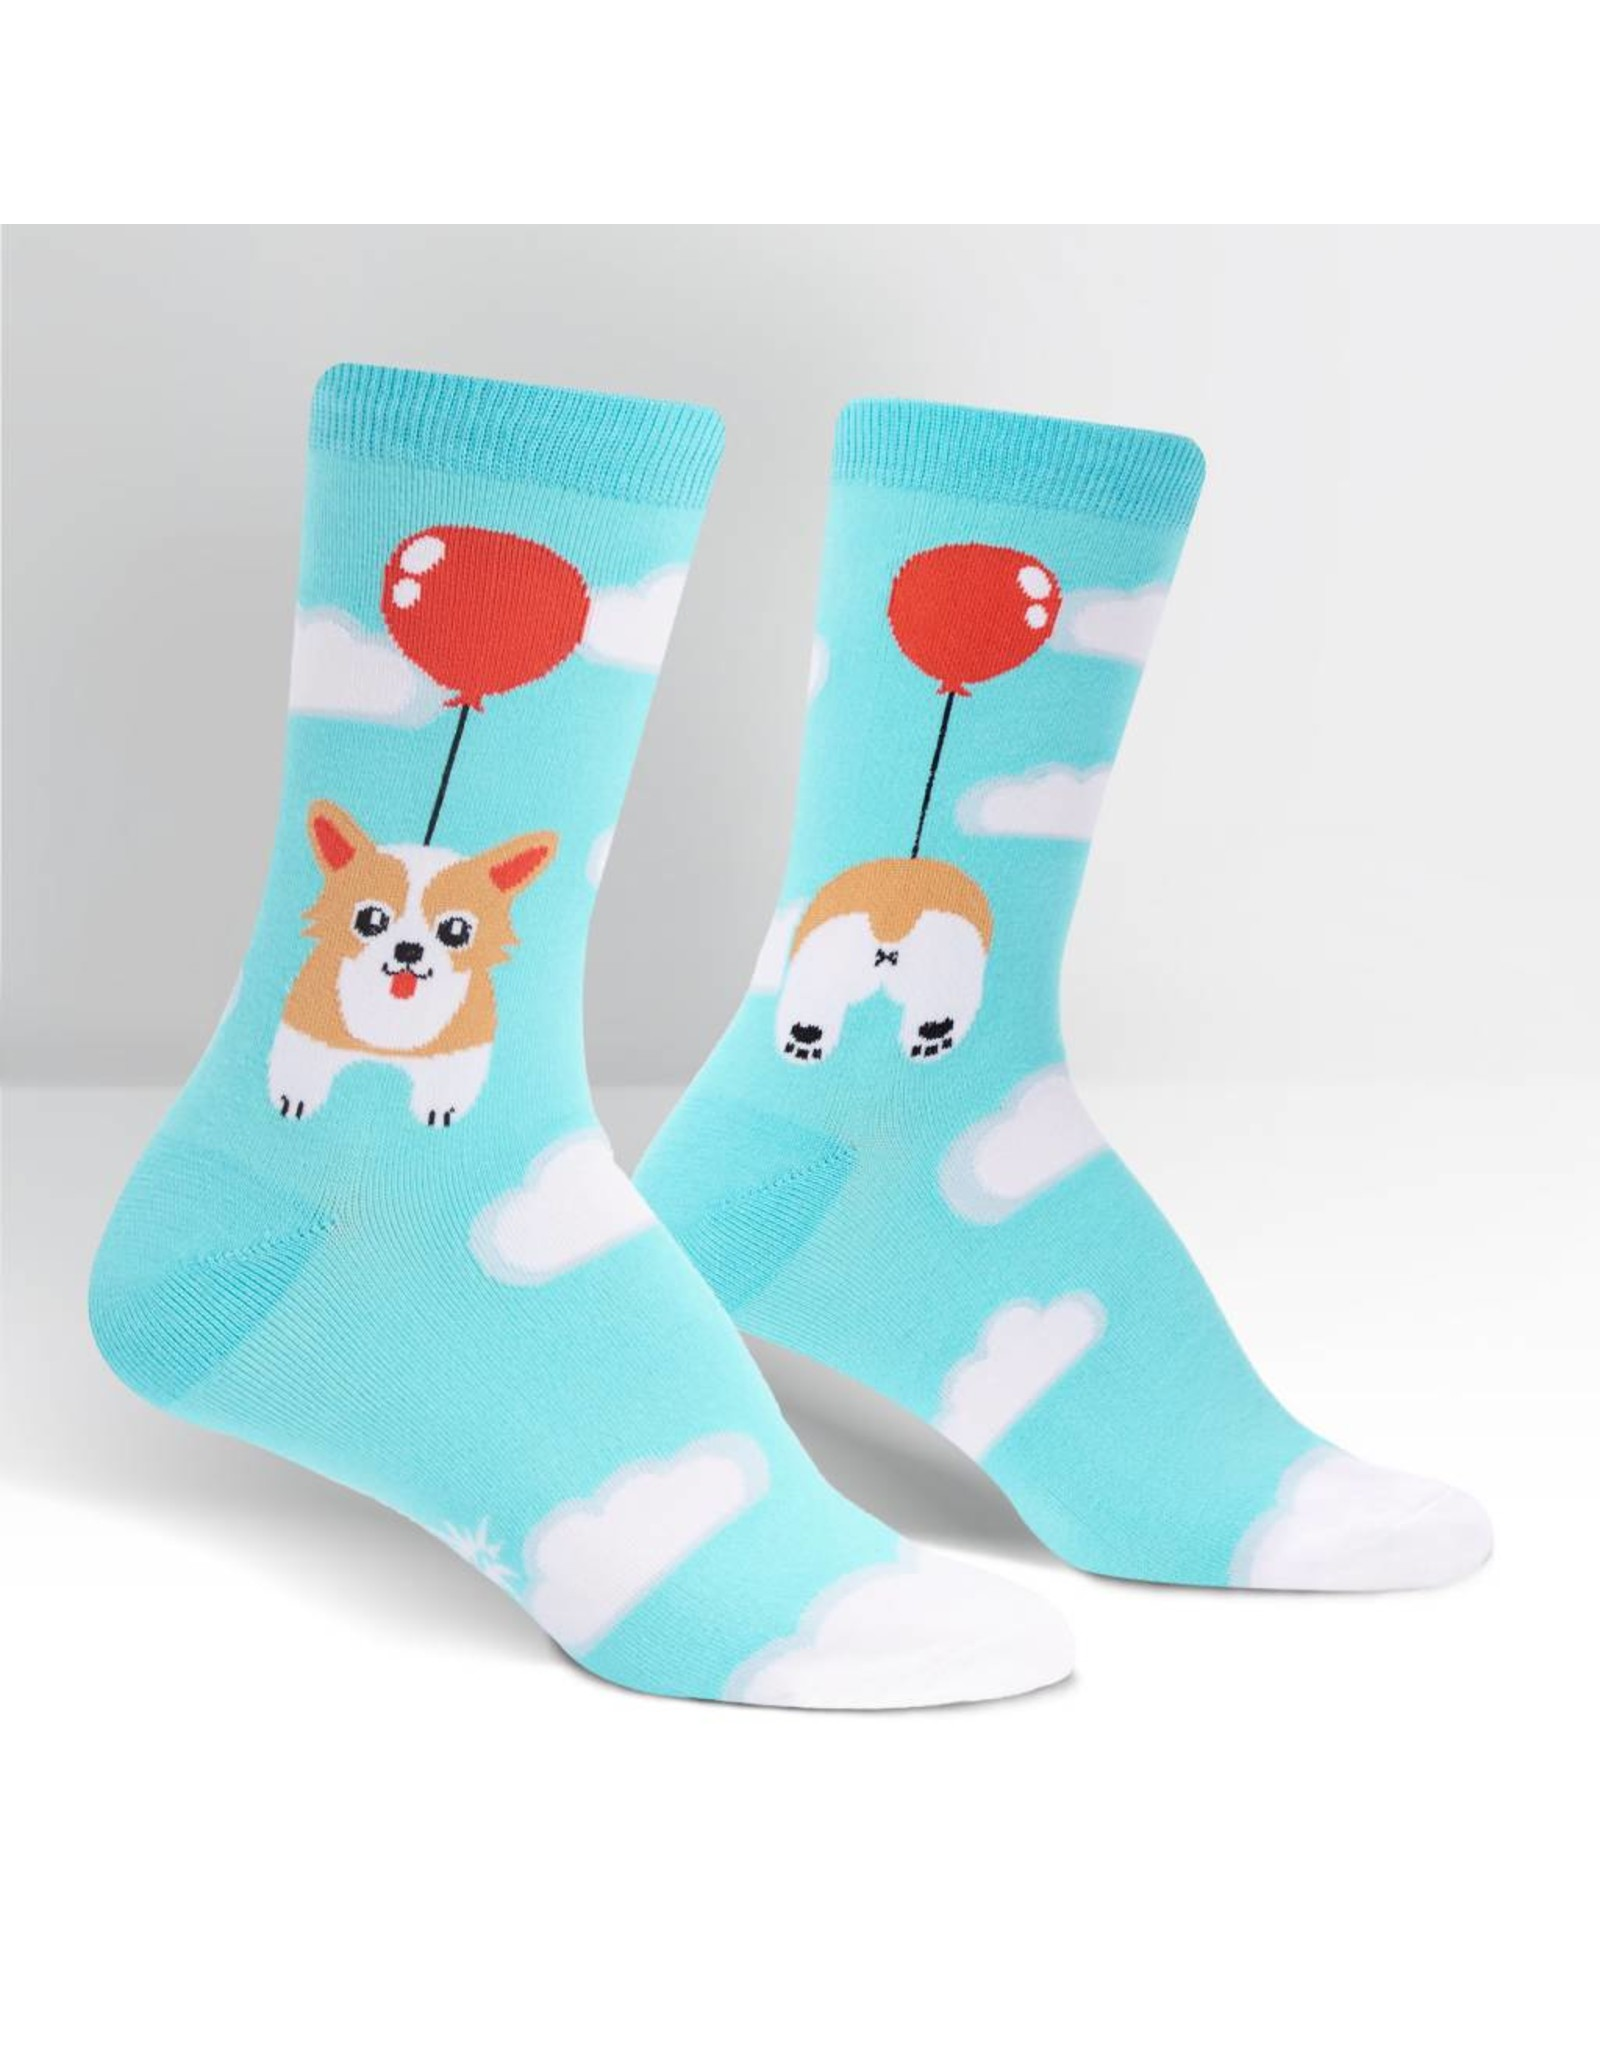 SOCK IT TO ME - Women's Pup, Pup and Away Crew Socks